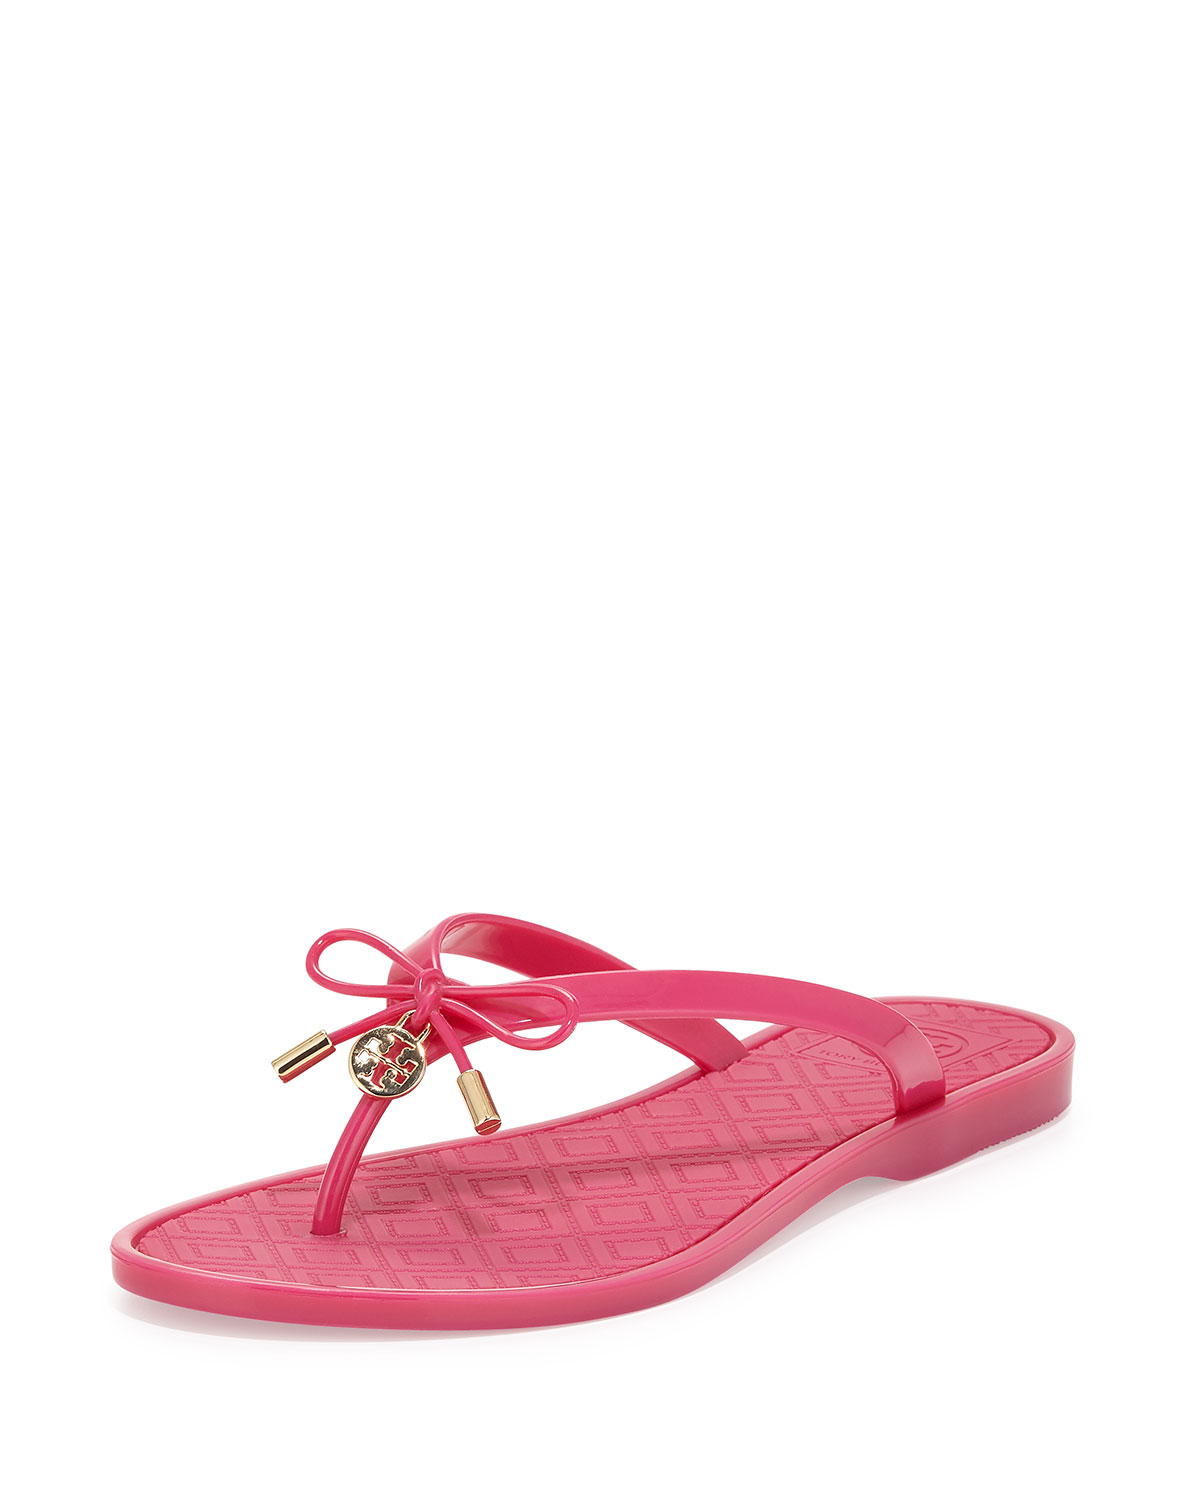 af172a705055 Tory Burch Jelly Bow Logo-Charm Thong Sandals